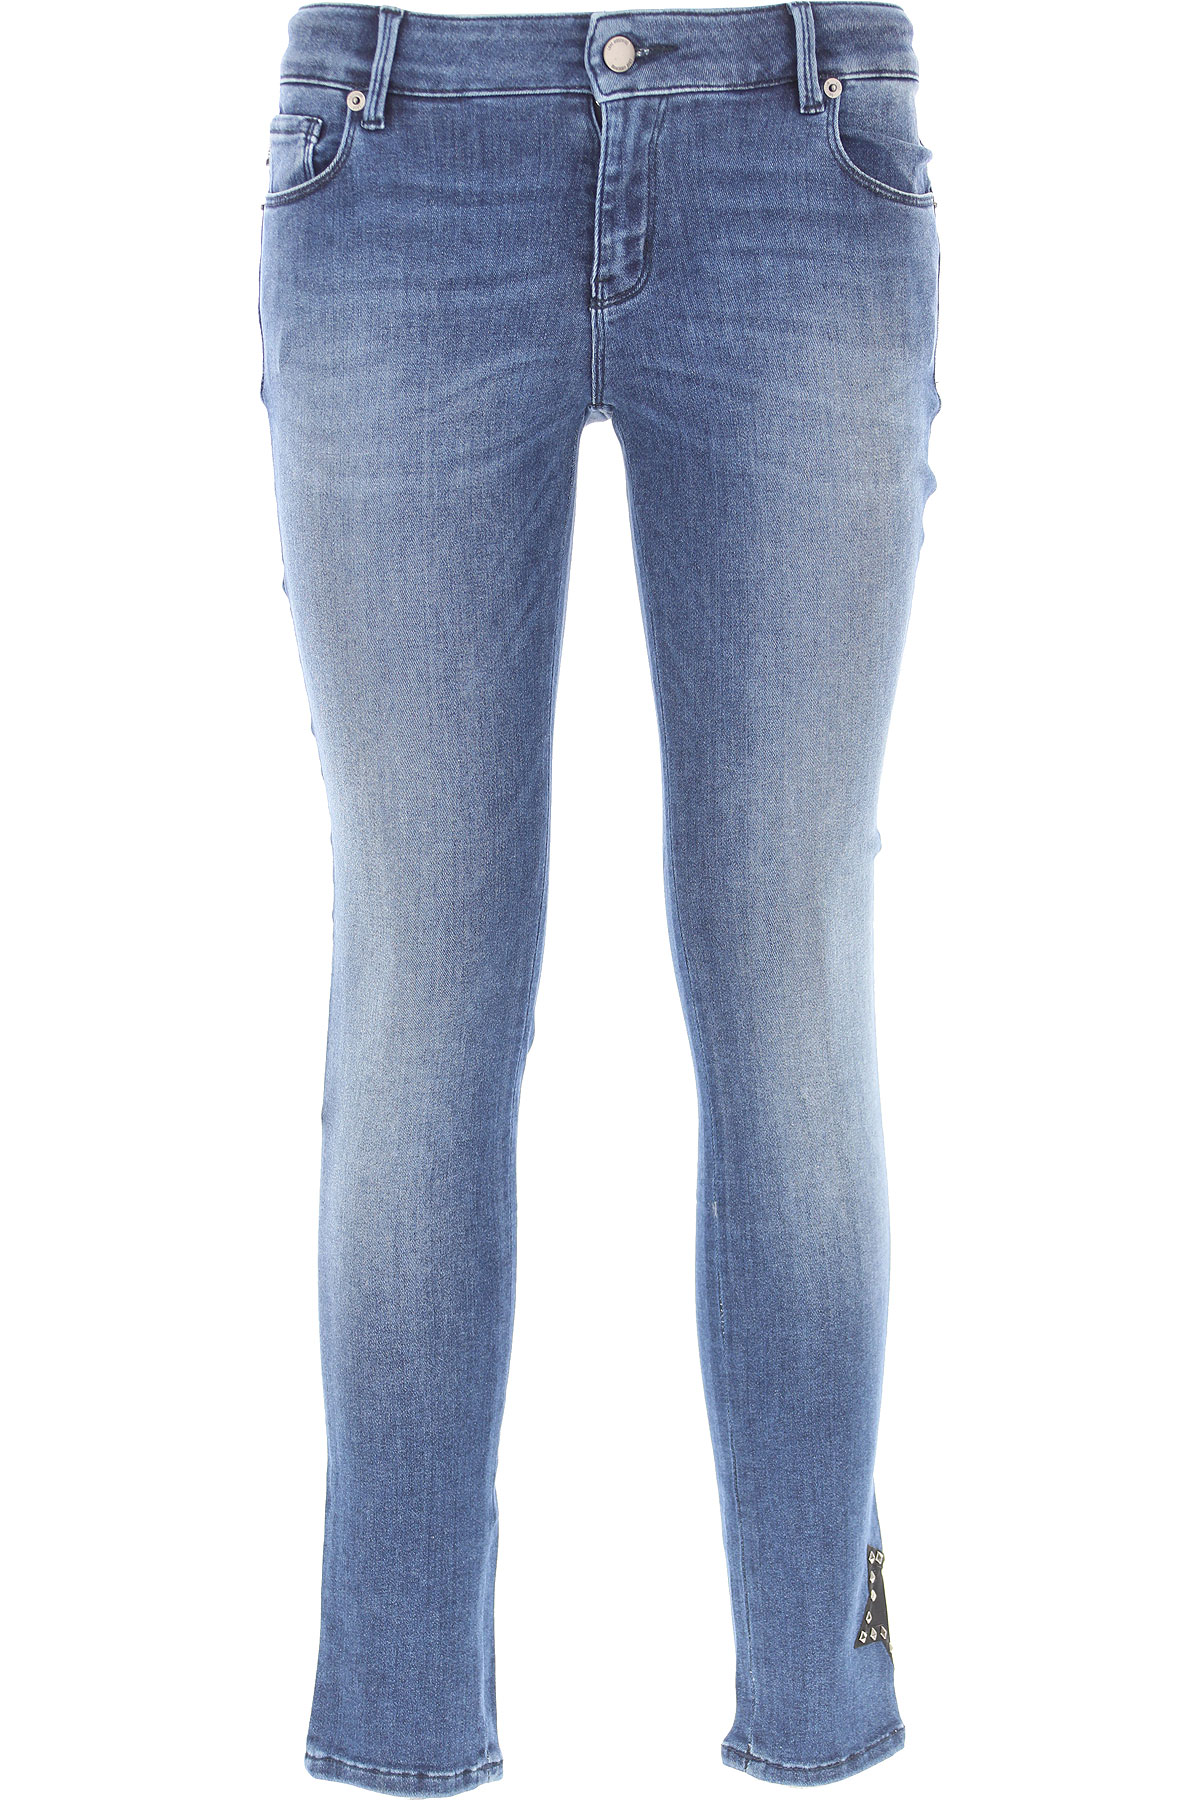 Moschino Jeans On Sale, Denim Blue, Cotton, 2017, 26 27 28 29 30